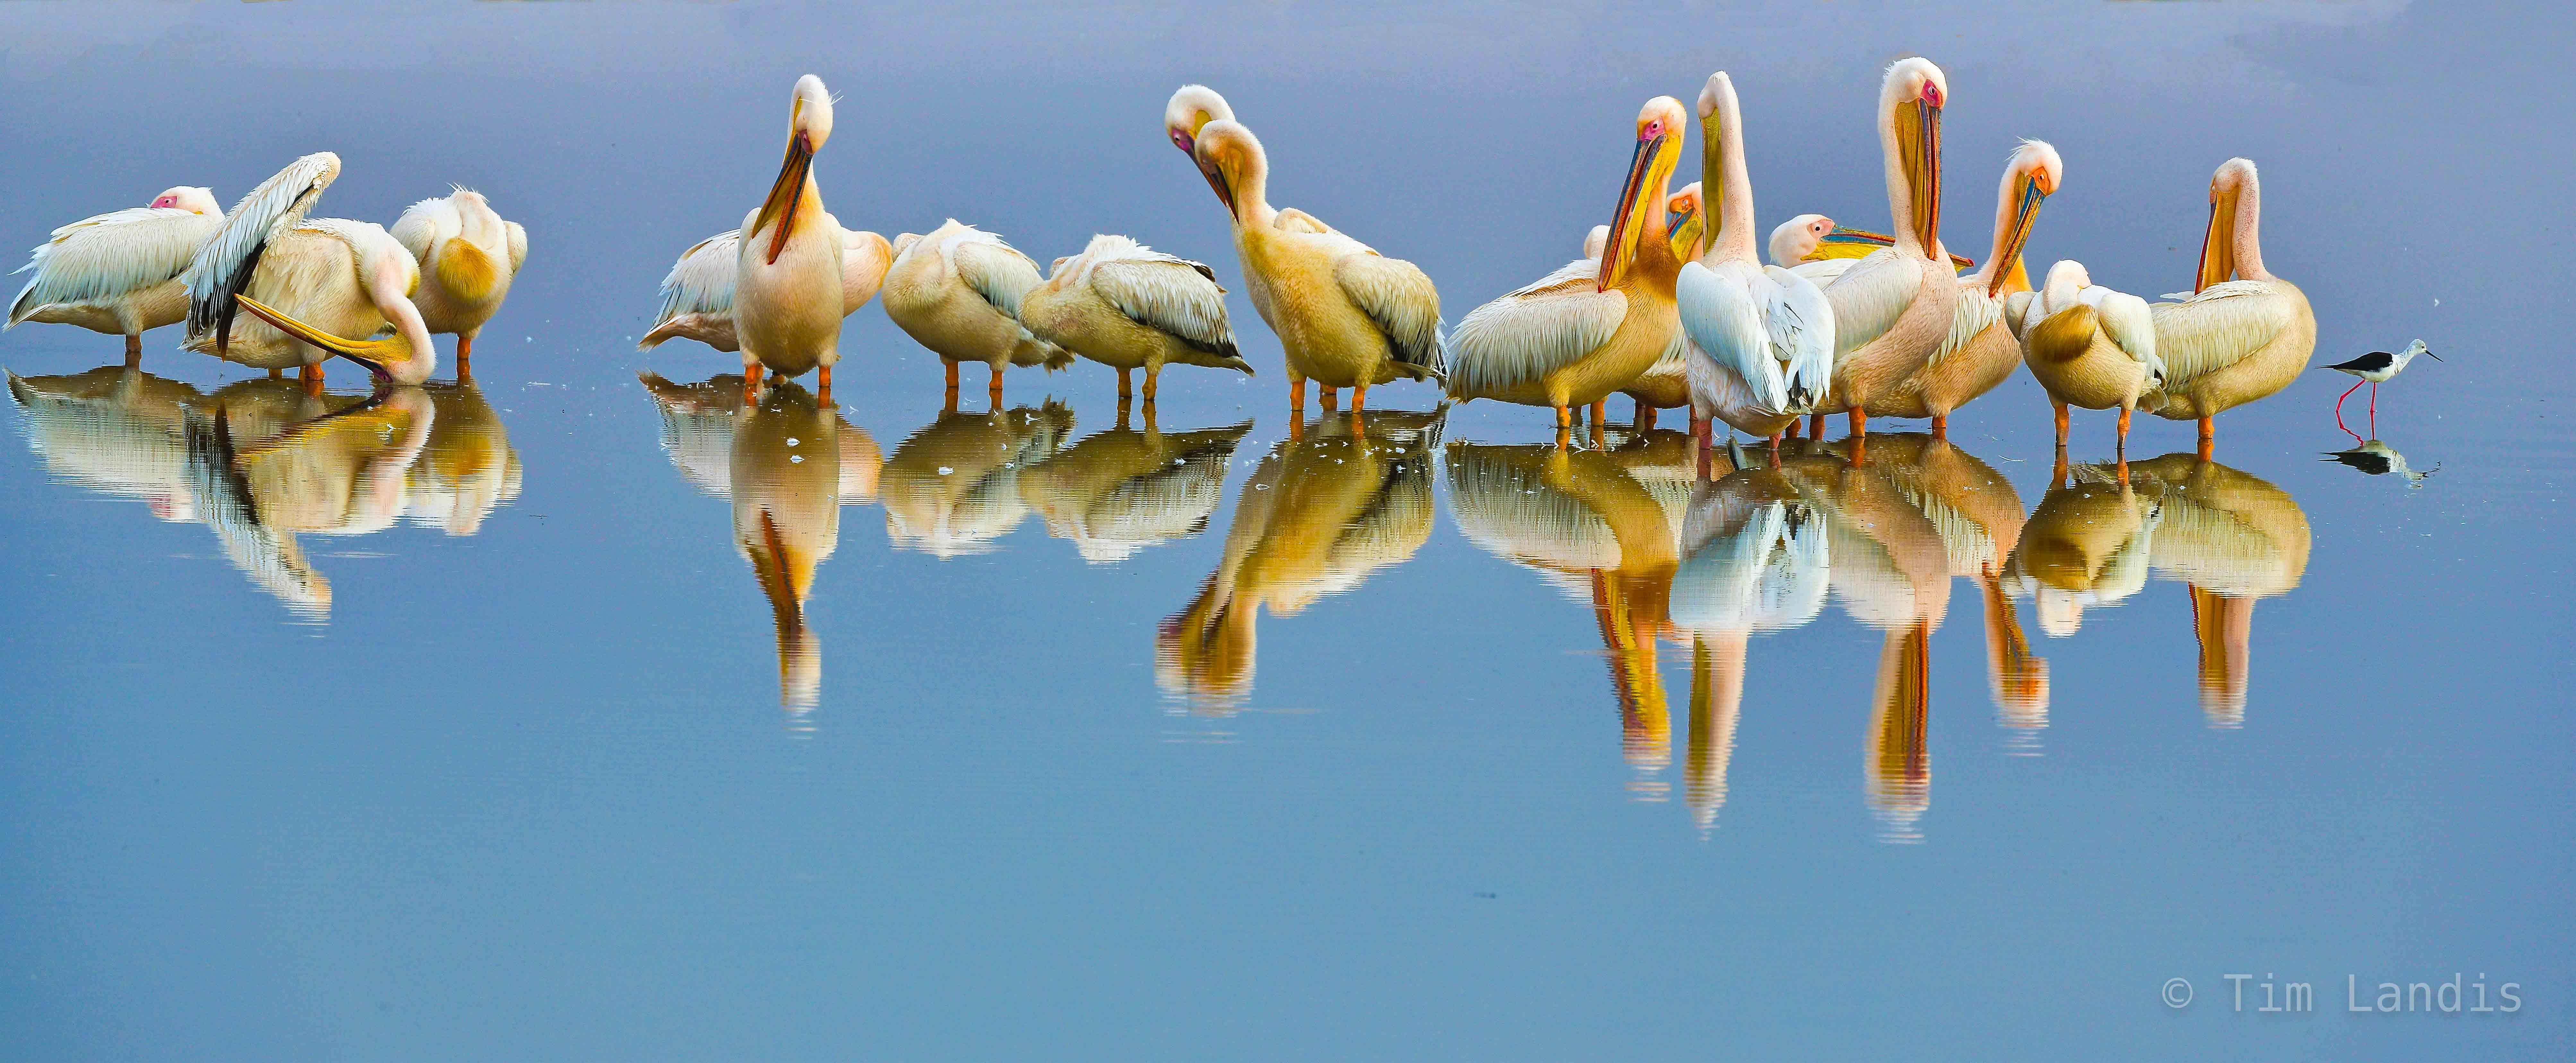 Yellow pelicans awaking, pelicans on a sea of glass, perfect reflections, photo